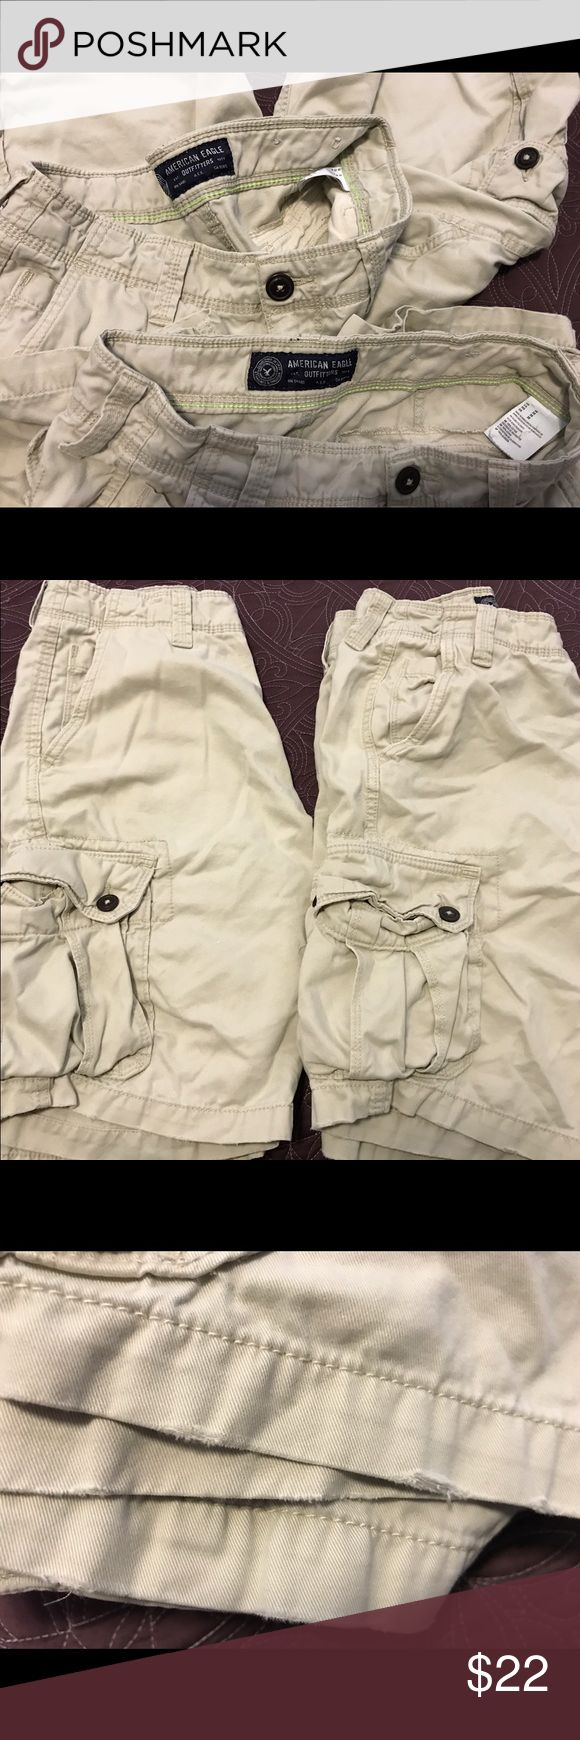 2 pair size 30 American Eagle cargo shorts 2 pair American Eagle cargo shorts , great condition with some slight fraying on the bottom of shorts. American Eagle Outfitters Shorts Cargo